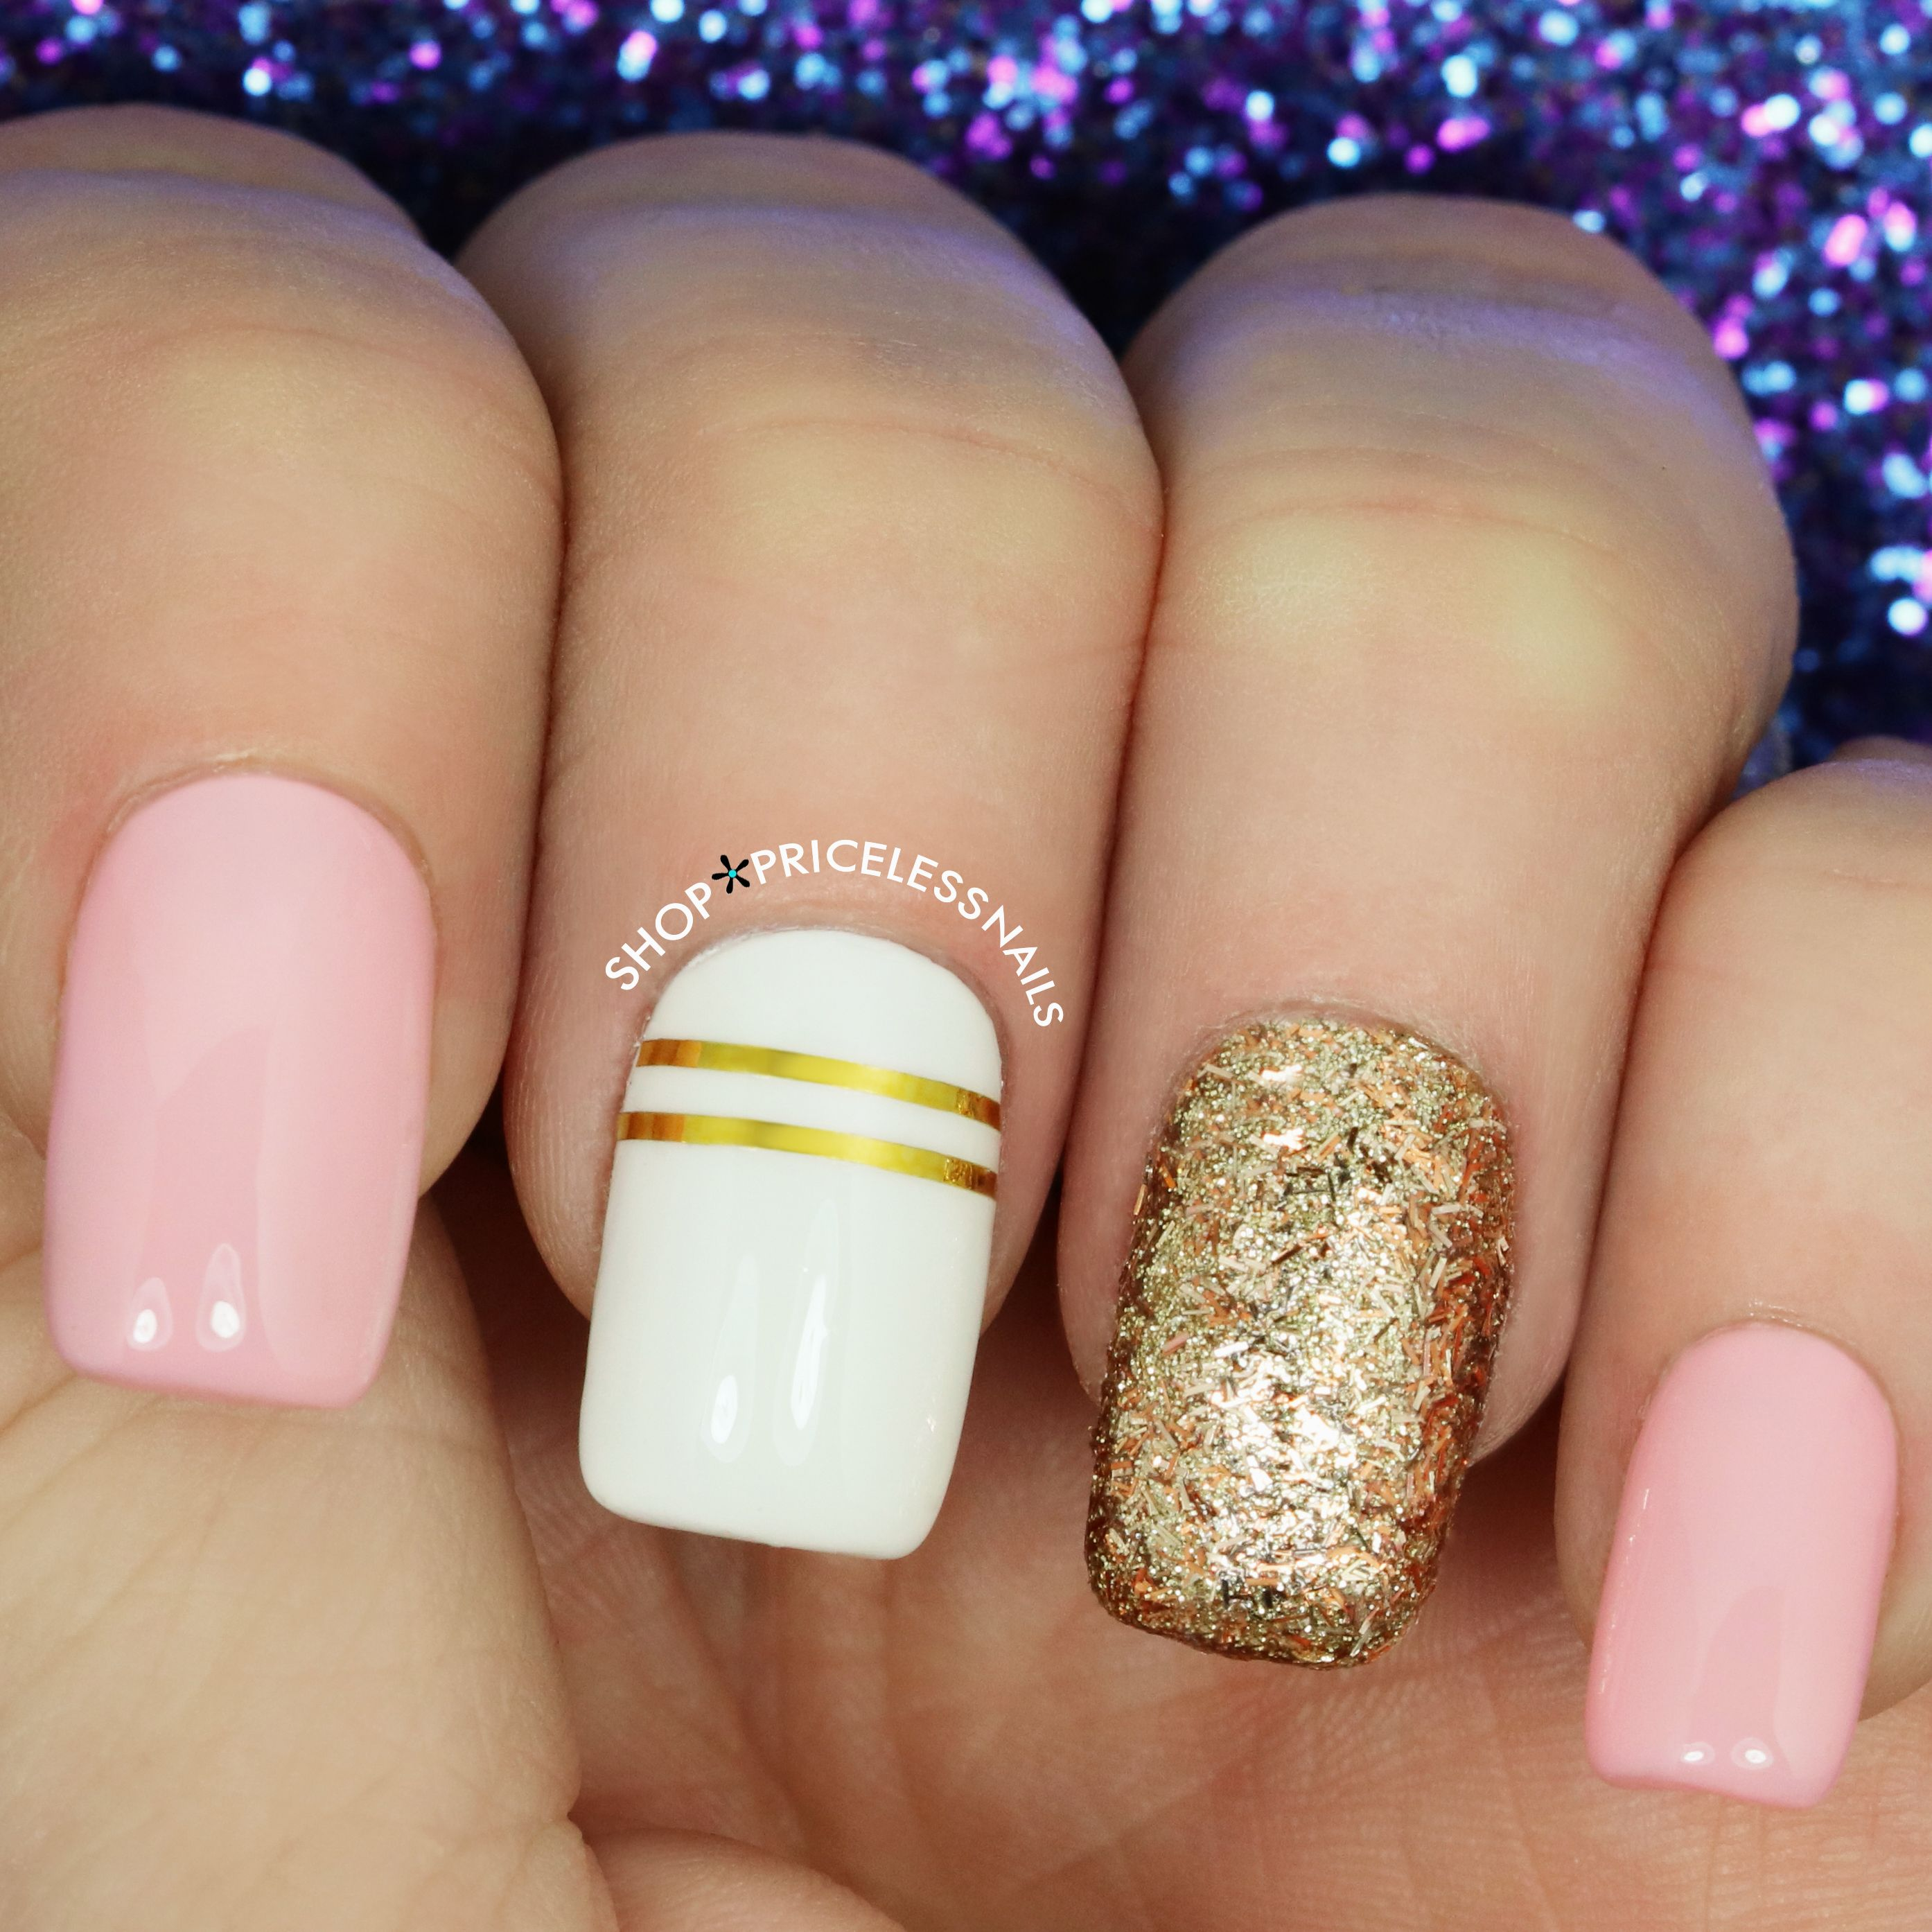 Rose gold, pink + striped nails! ✨ | Nails | Pink nails, Striped ...